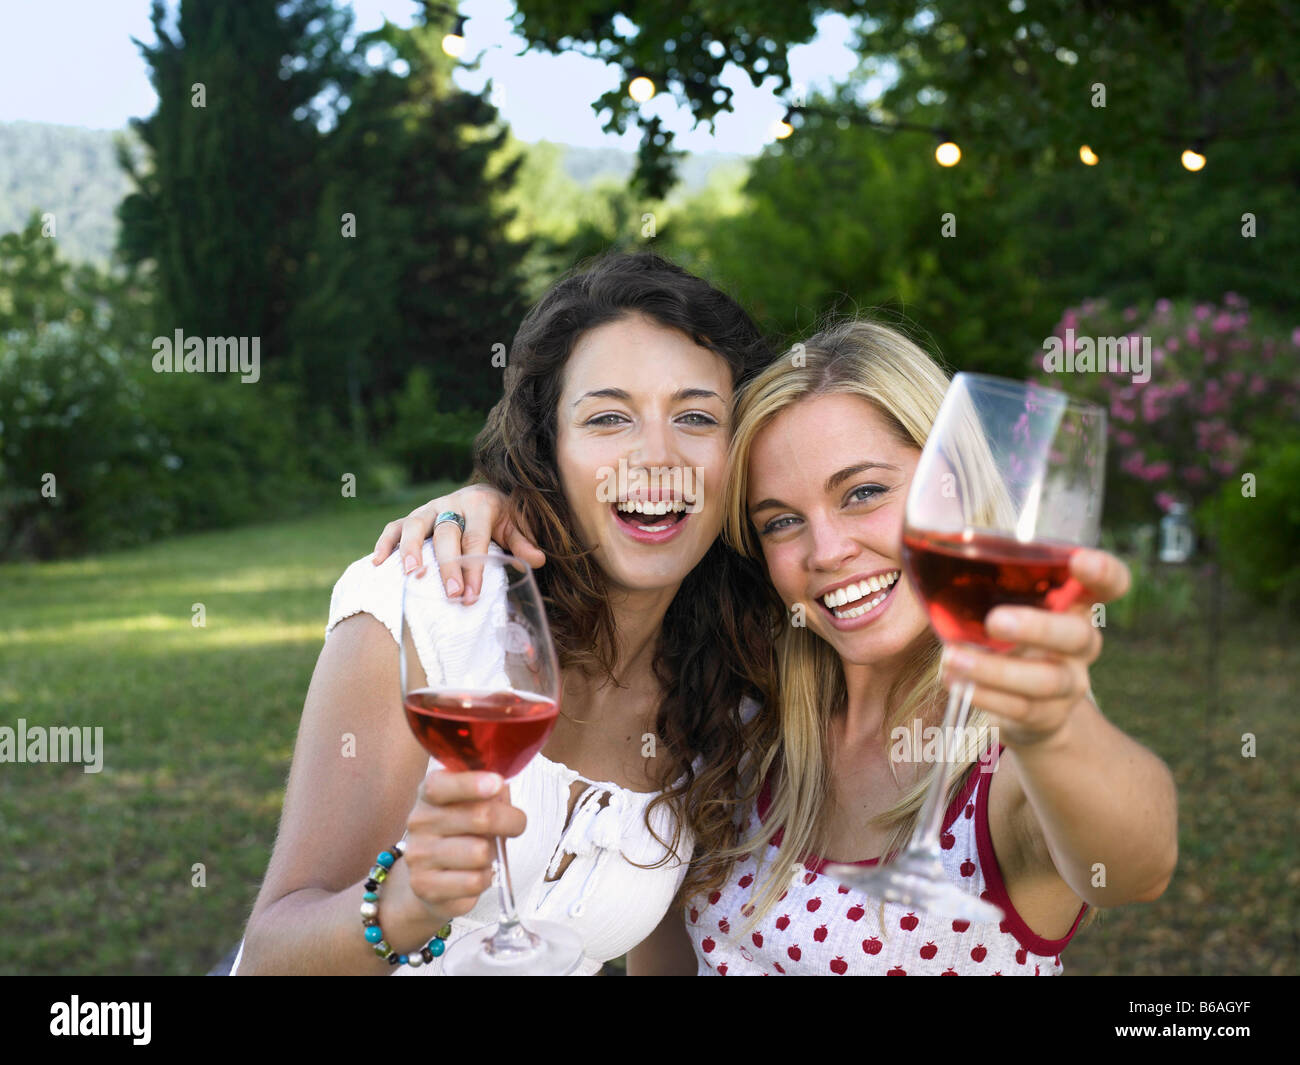 Two women celebrating - Stock Image